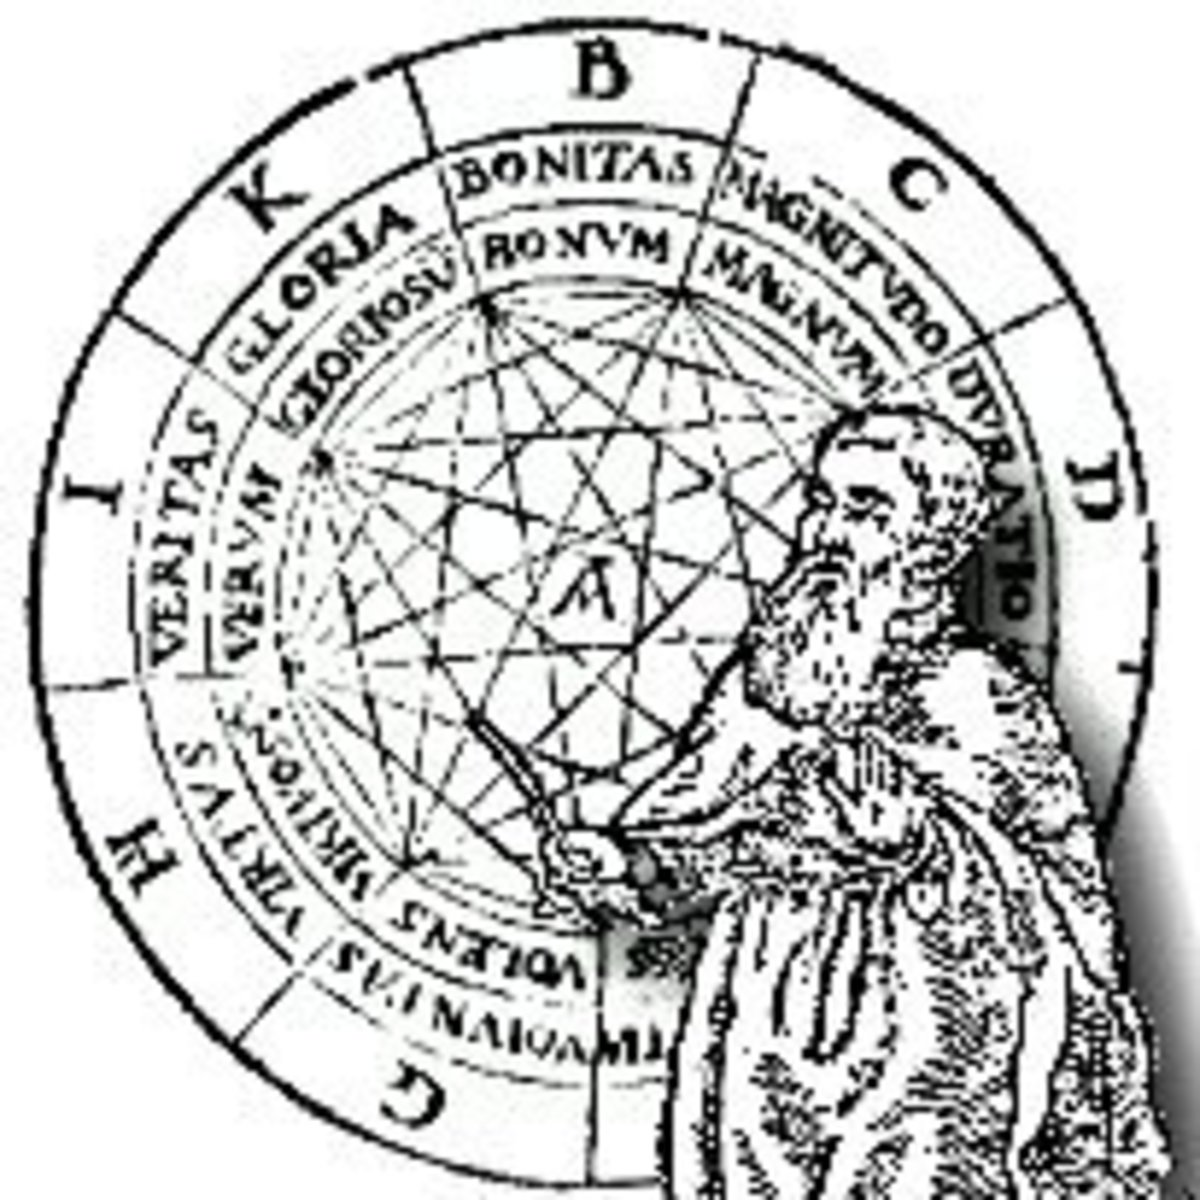 Ramon Llull was the first writer to use the terms and symbols associated with passions, vices, virtues and holy ideas and to place them around a nine pointed diagram surrounded by a circle